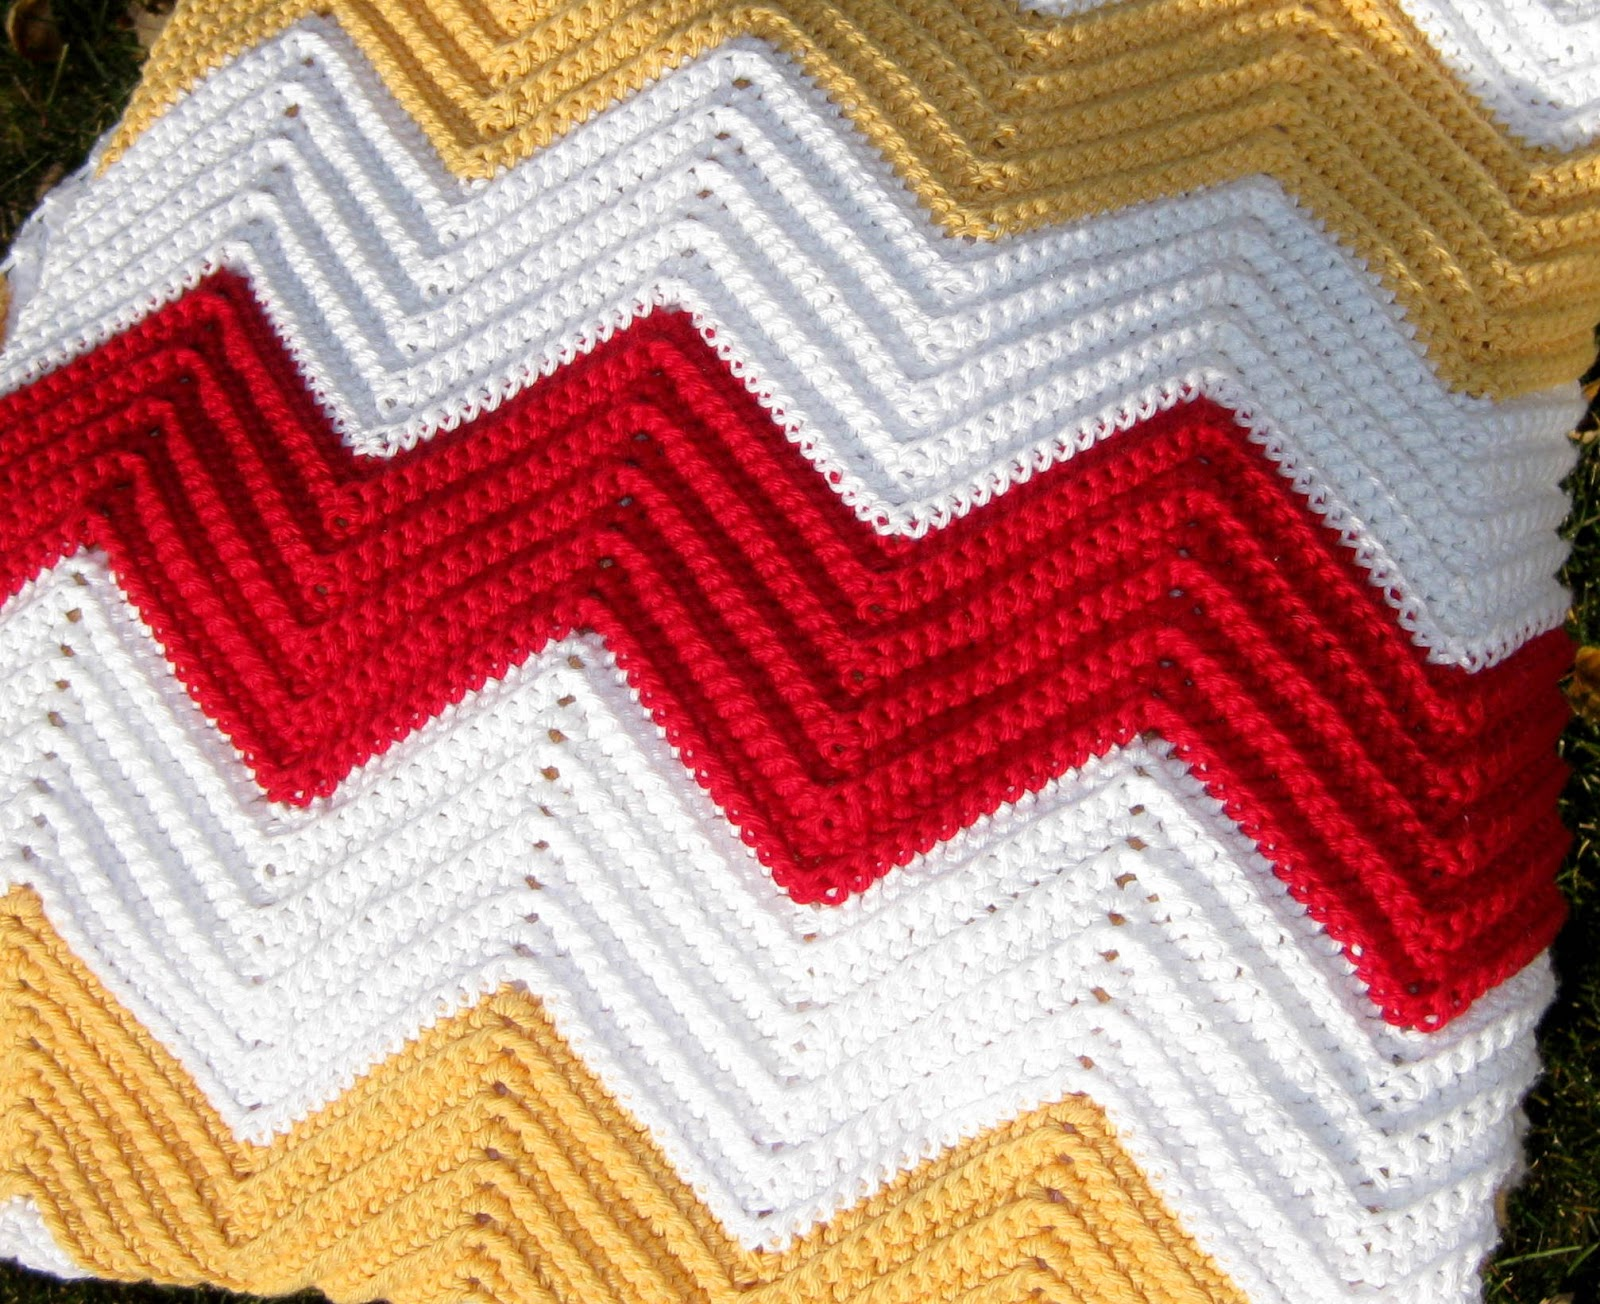 If you know how to single crochet, then you can make this blanket ...